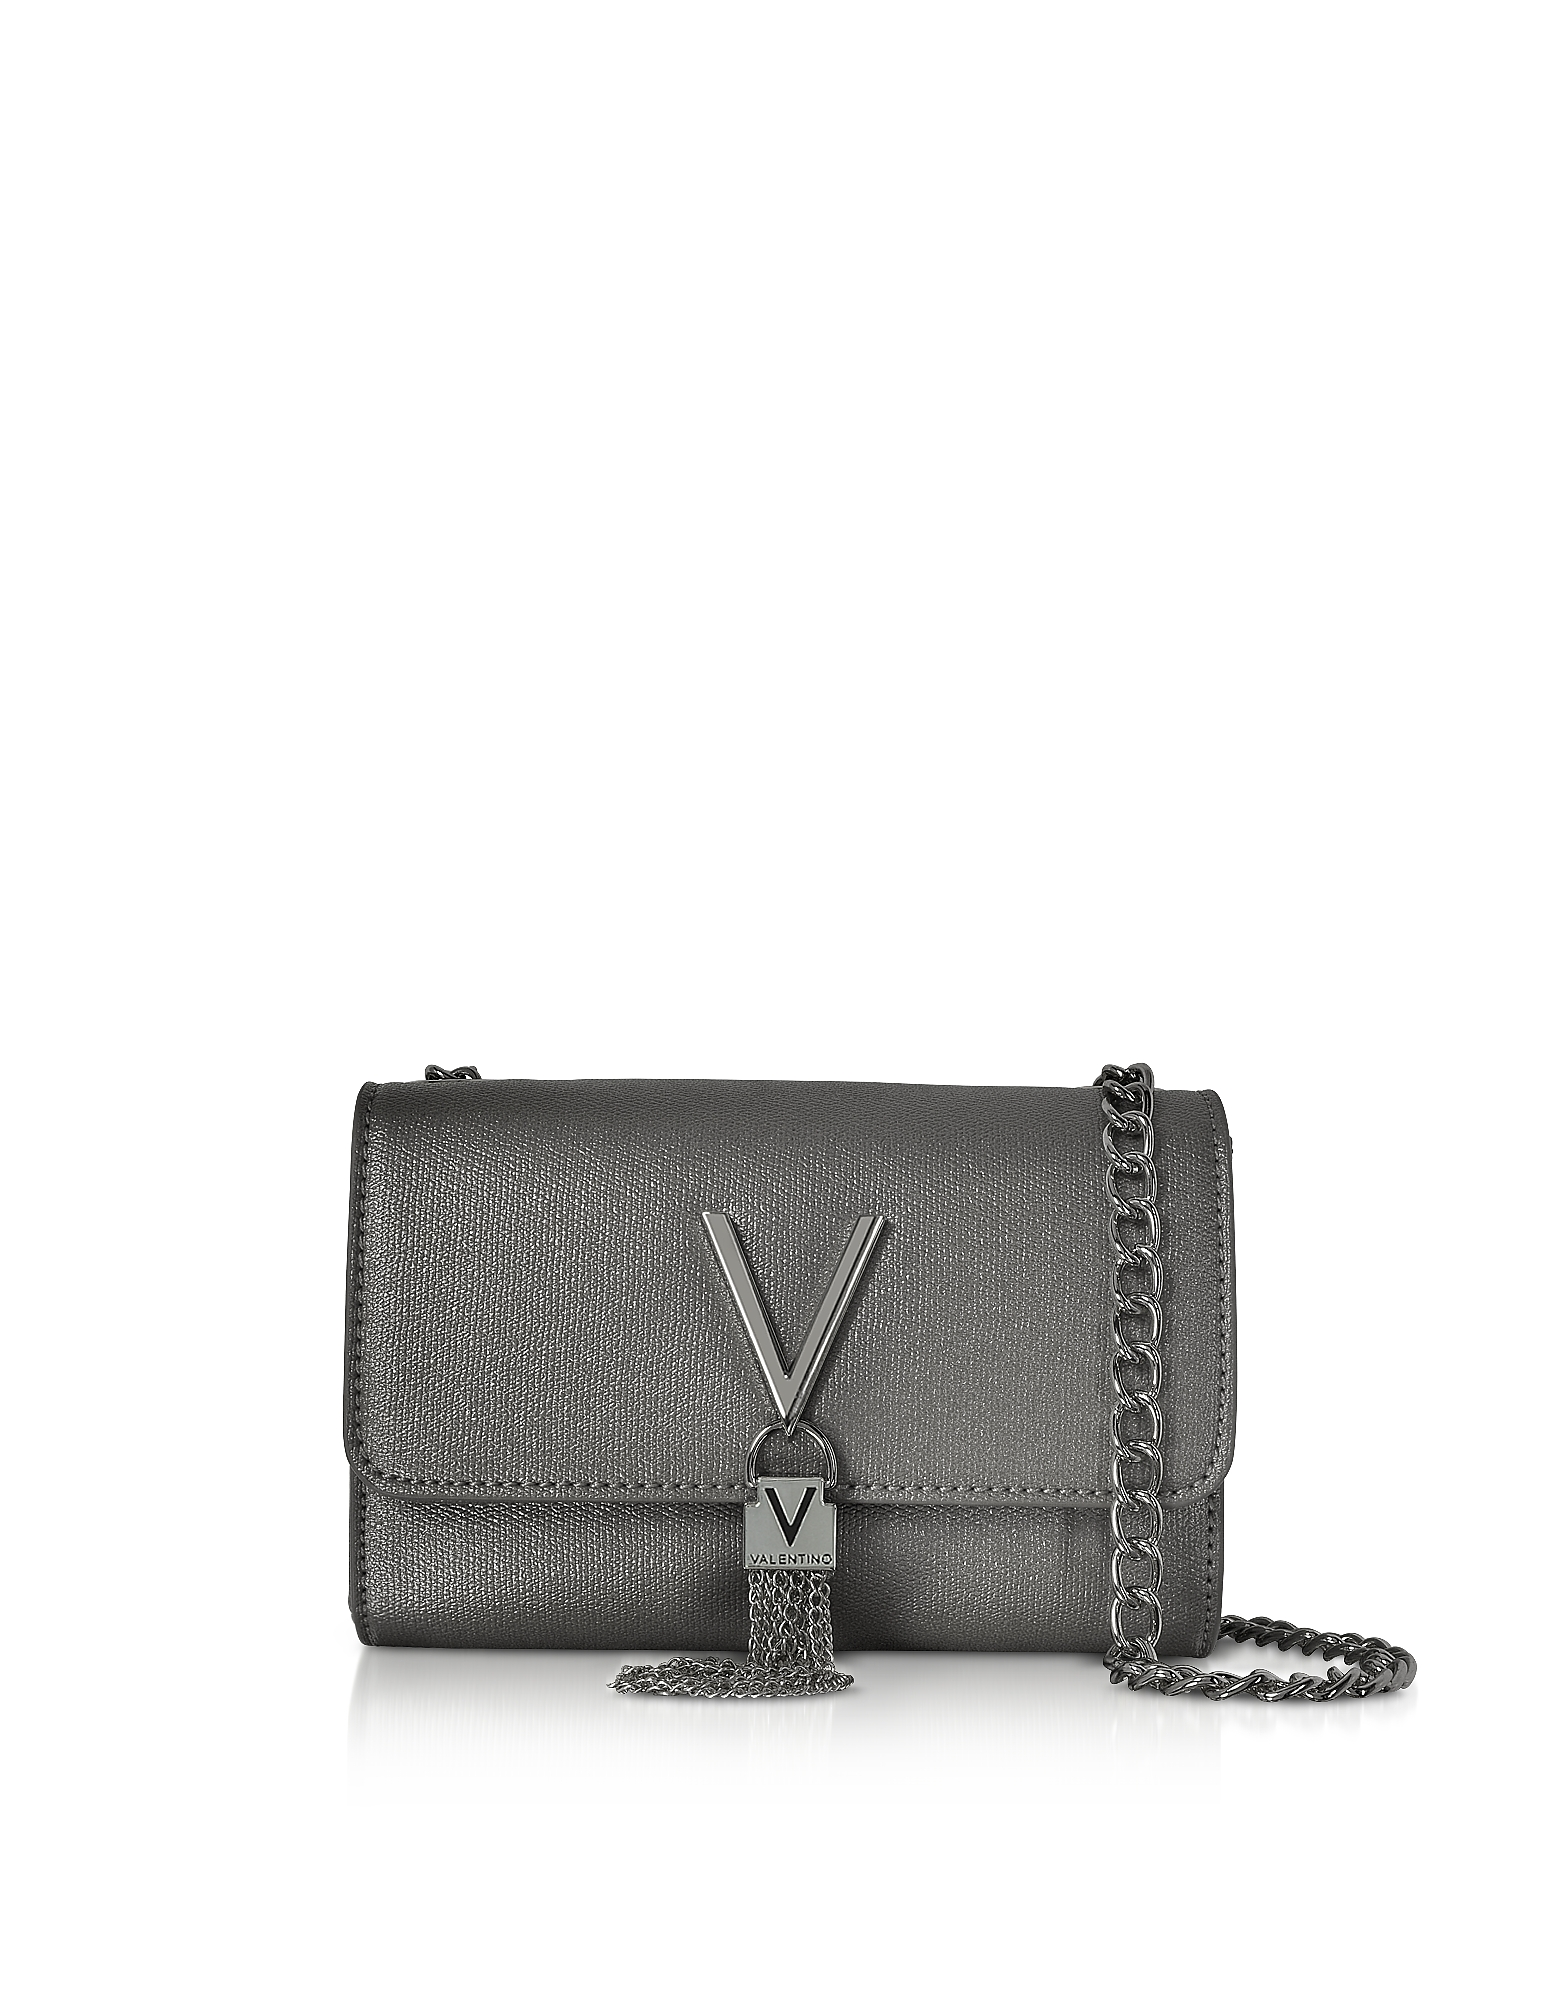 Eco Grained Leather Marilyn Mini Shoulder Bag